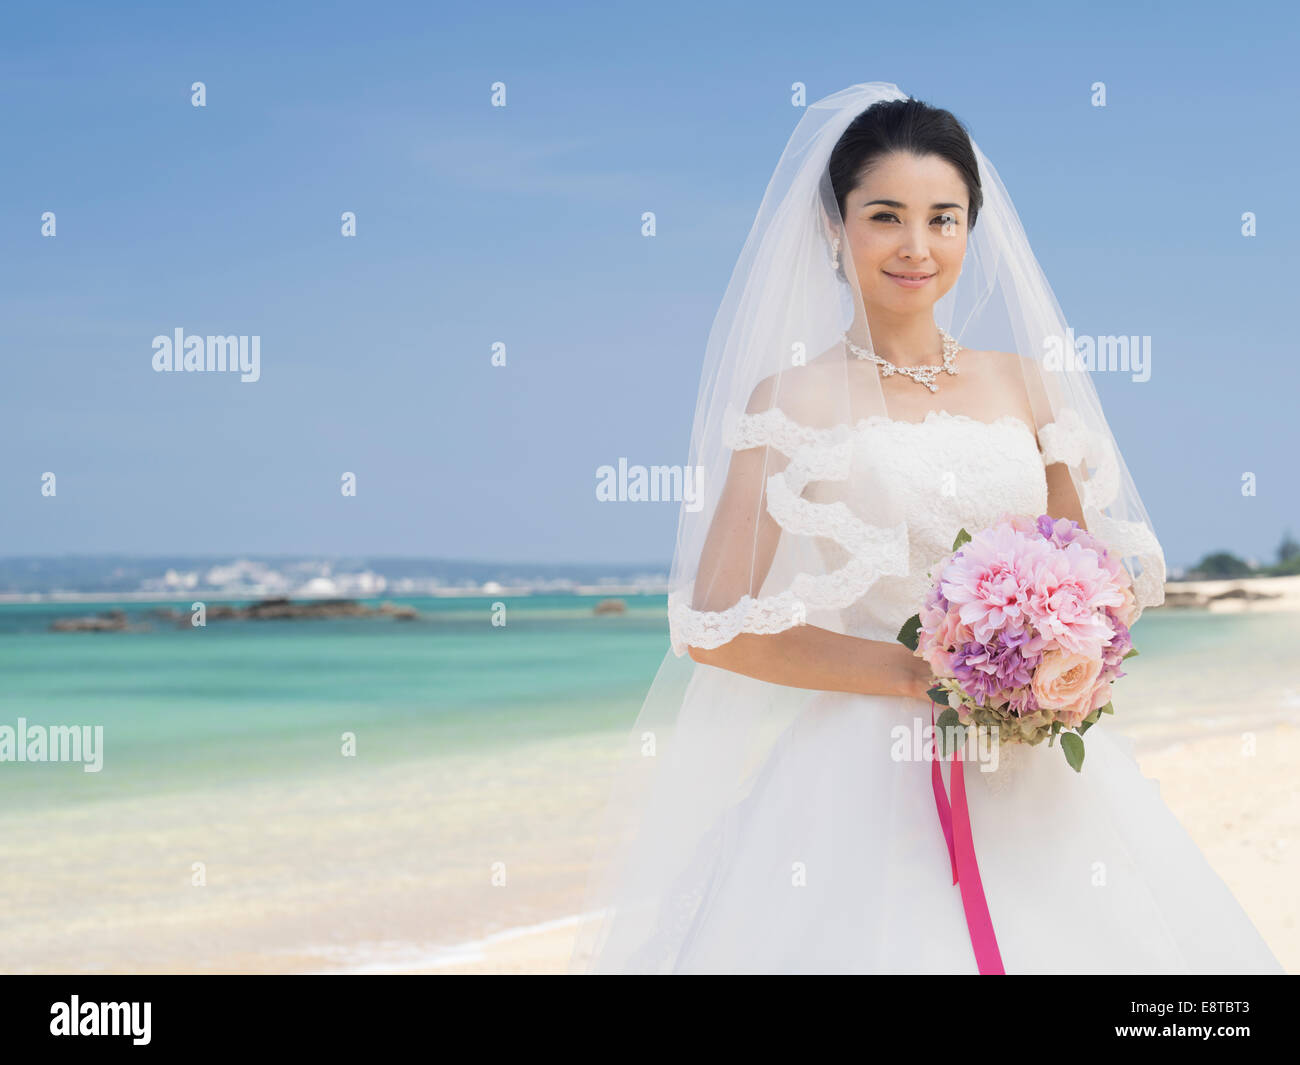 Tropical Wedding Stock Photos & Tropical Wedding Stock Images - Alamy